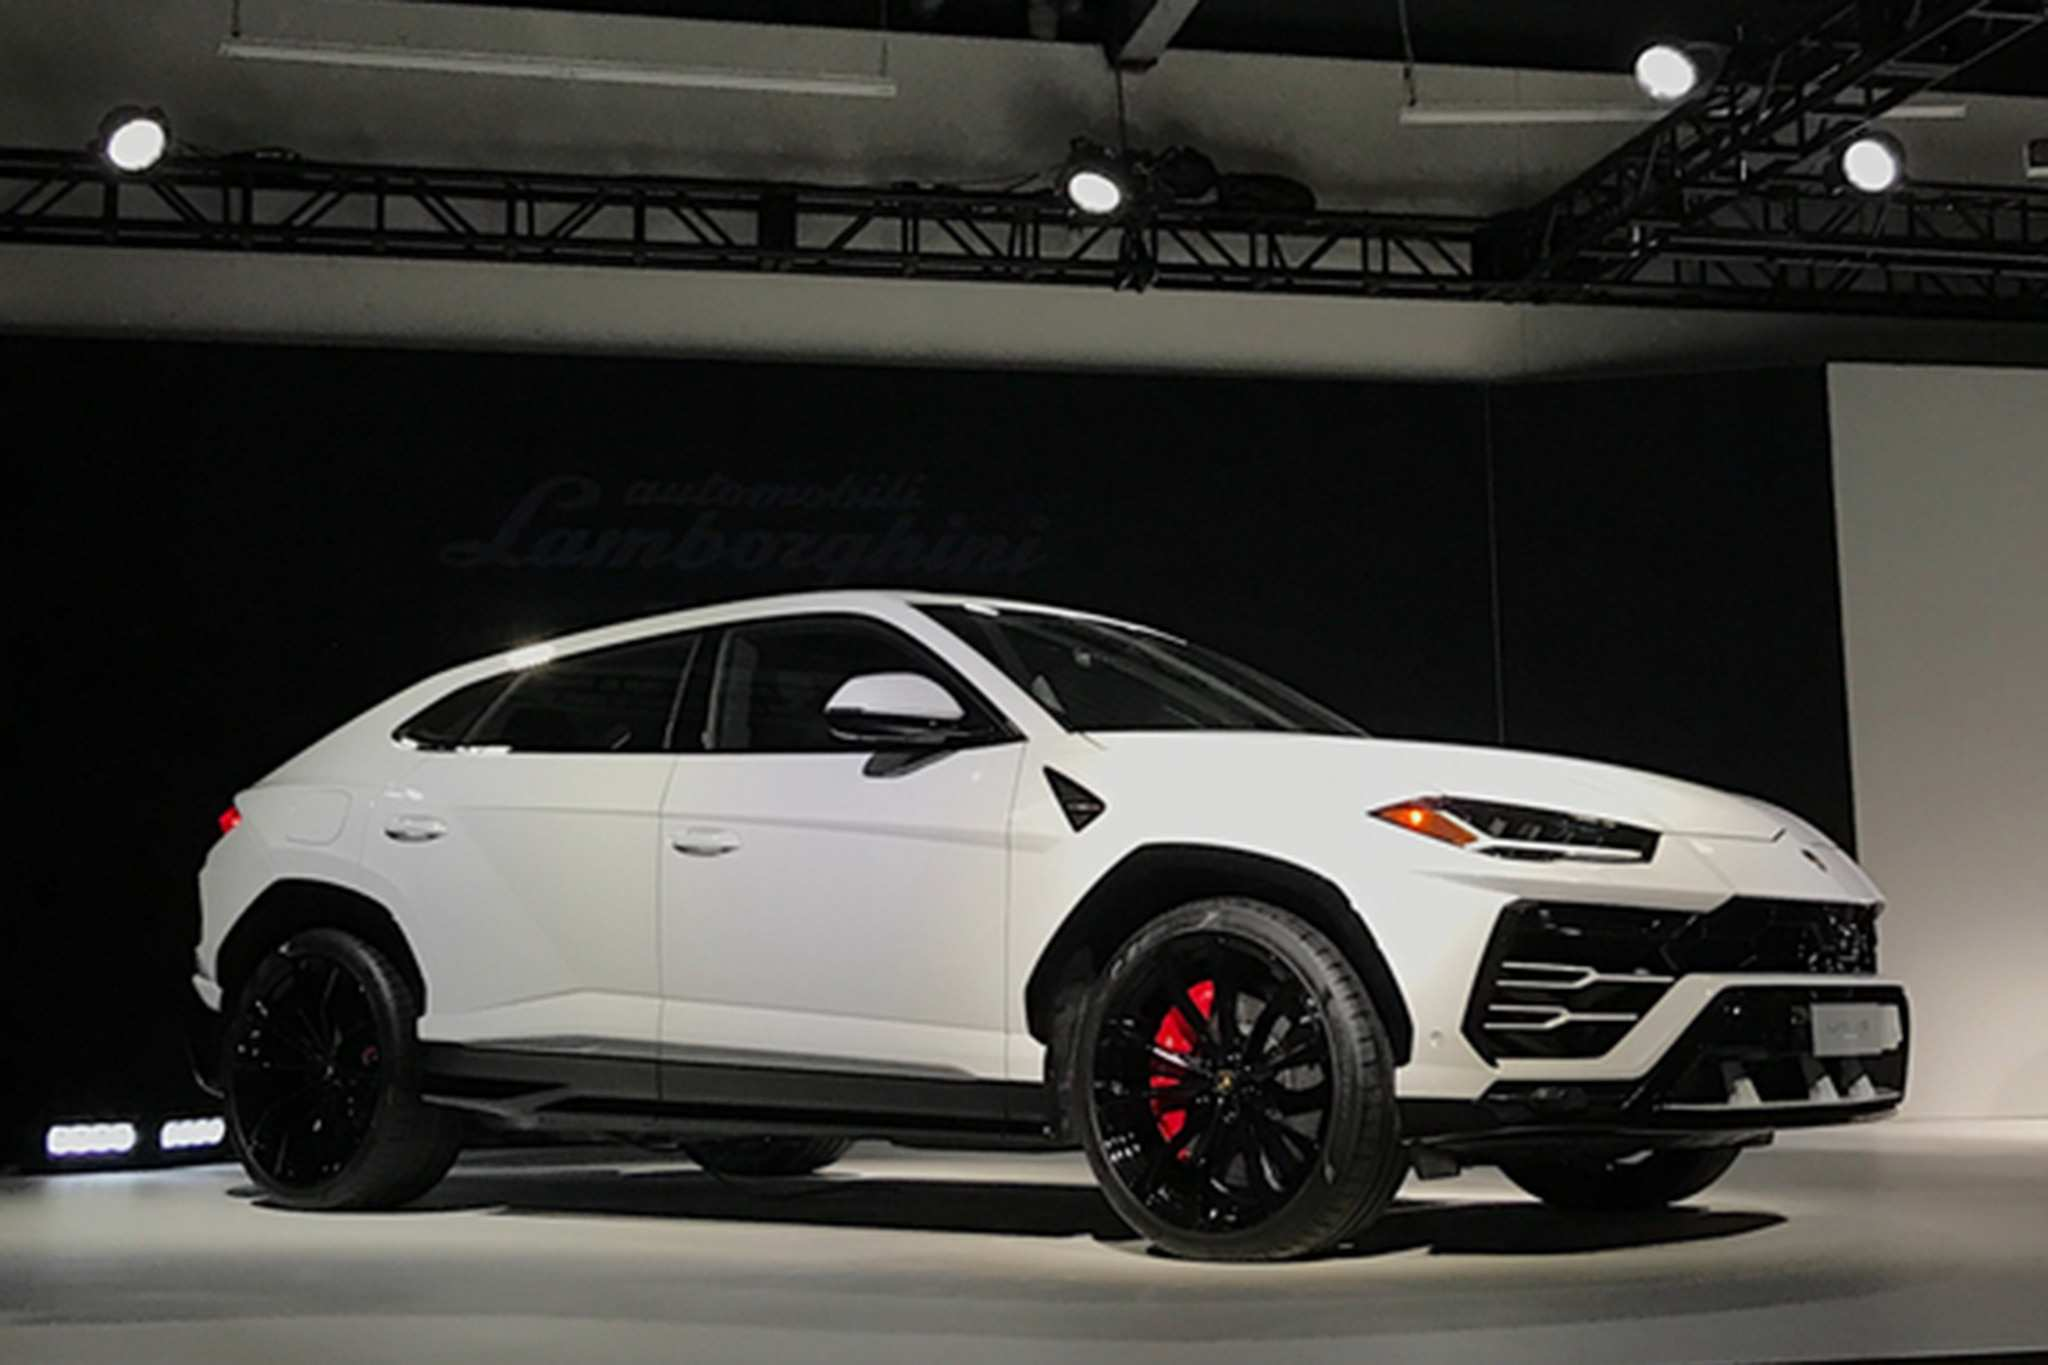 85 Gallery of 2019 Lamborghini Urus Price Concept with 2019 Lamborghini Urus Price